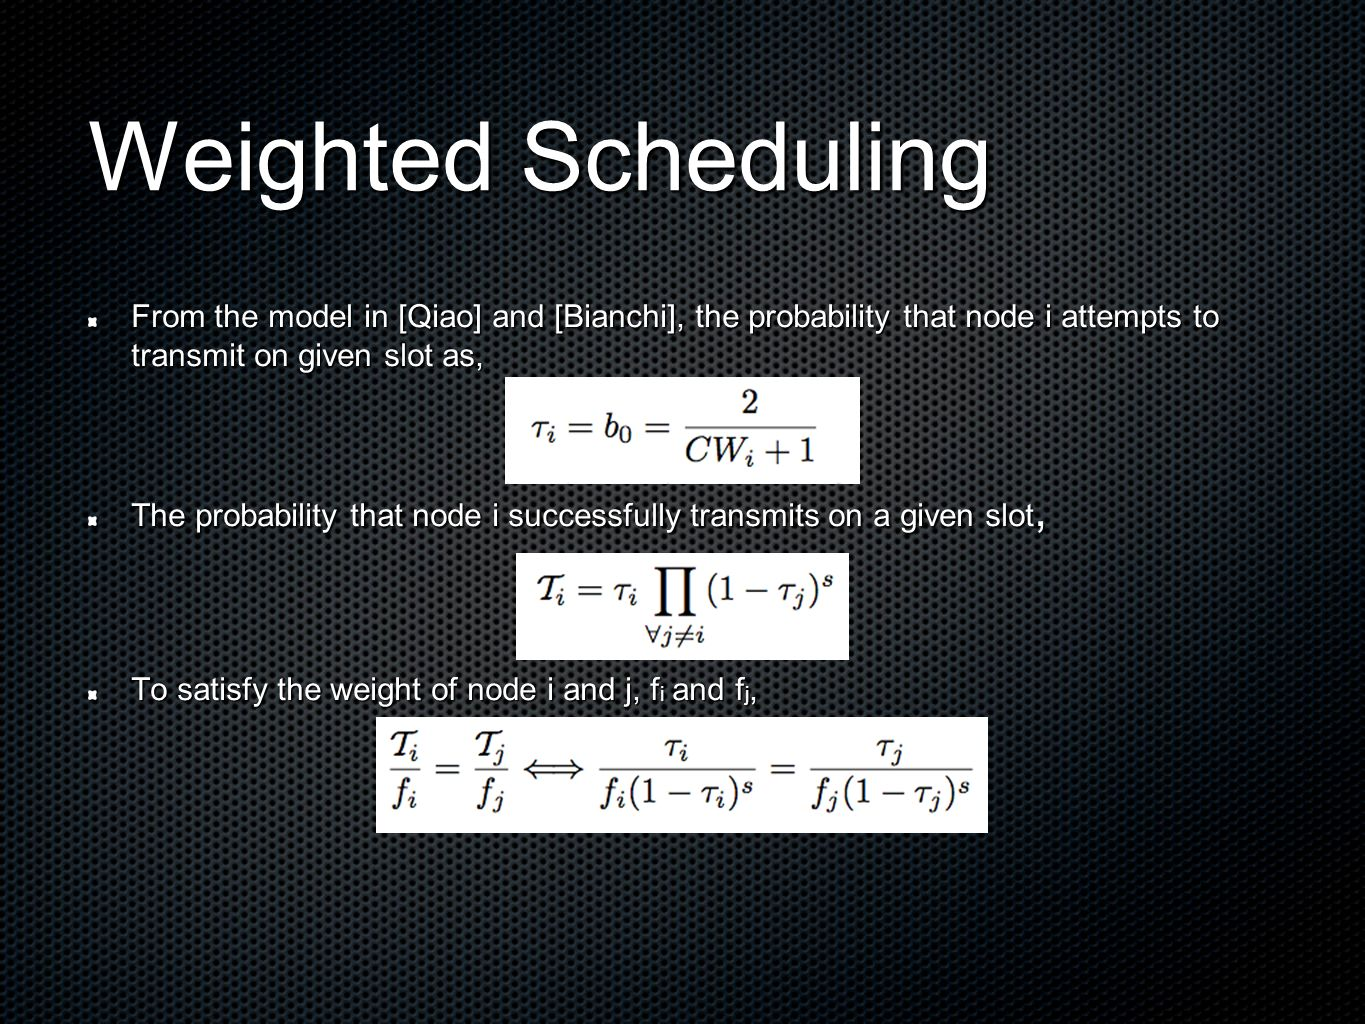 Weighted Scheduling From the model in [Qiao] and [Bianchi], the probability that node i attempts to transmit on given slot as, The probability that node i successfully transmits on a given slot, To satisfy the weight of node i and j, f i and f j,